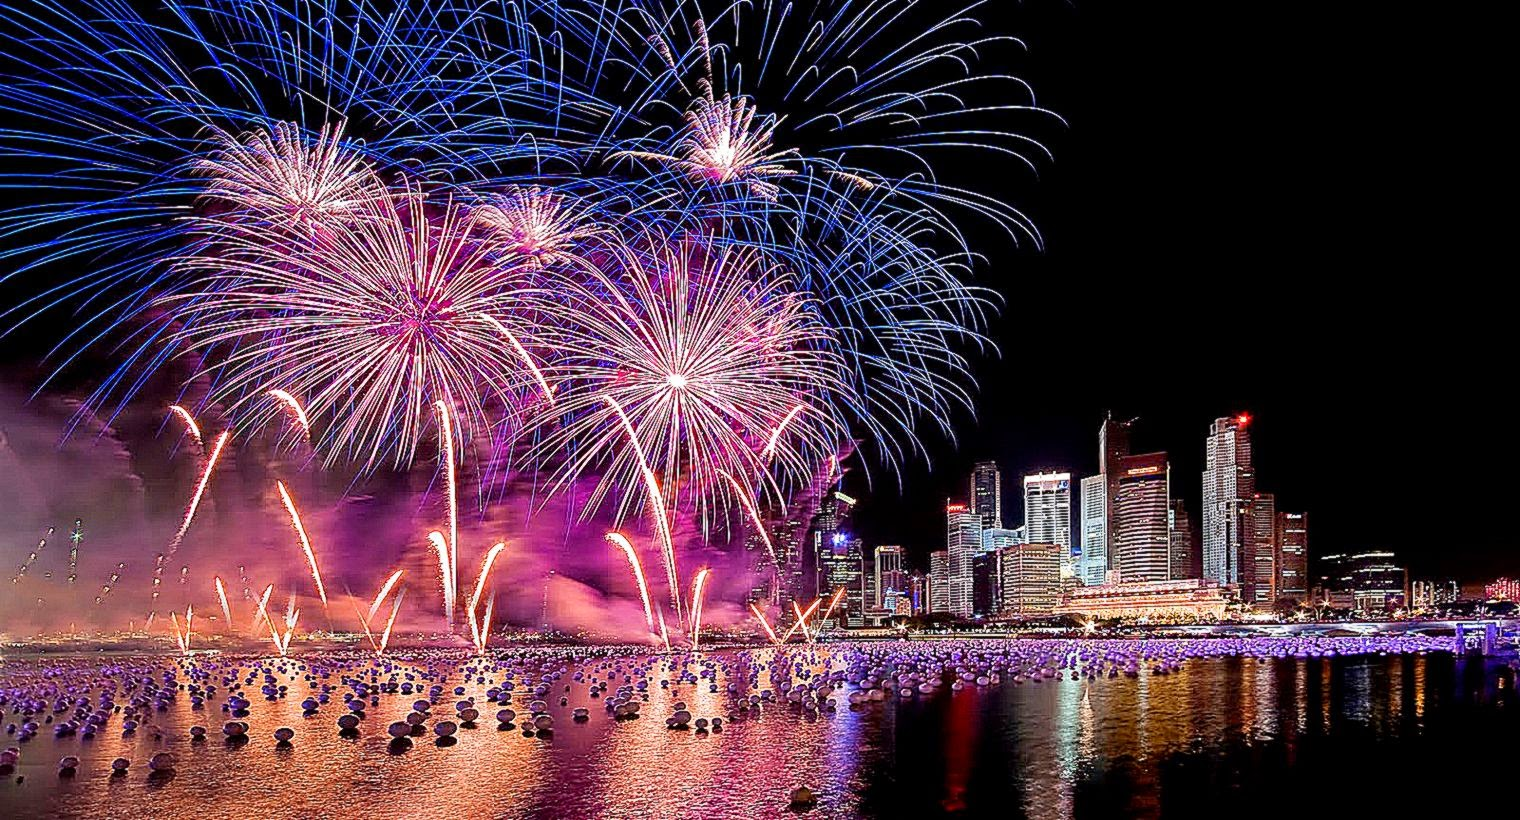 hd wallpapers for dell laptop,fireworks,new years day,night,pink,reflection